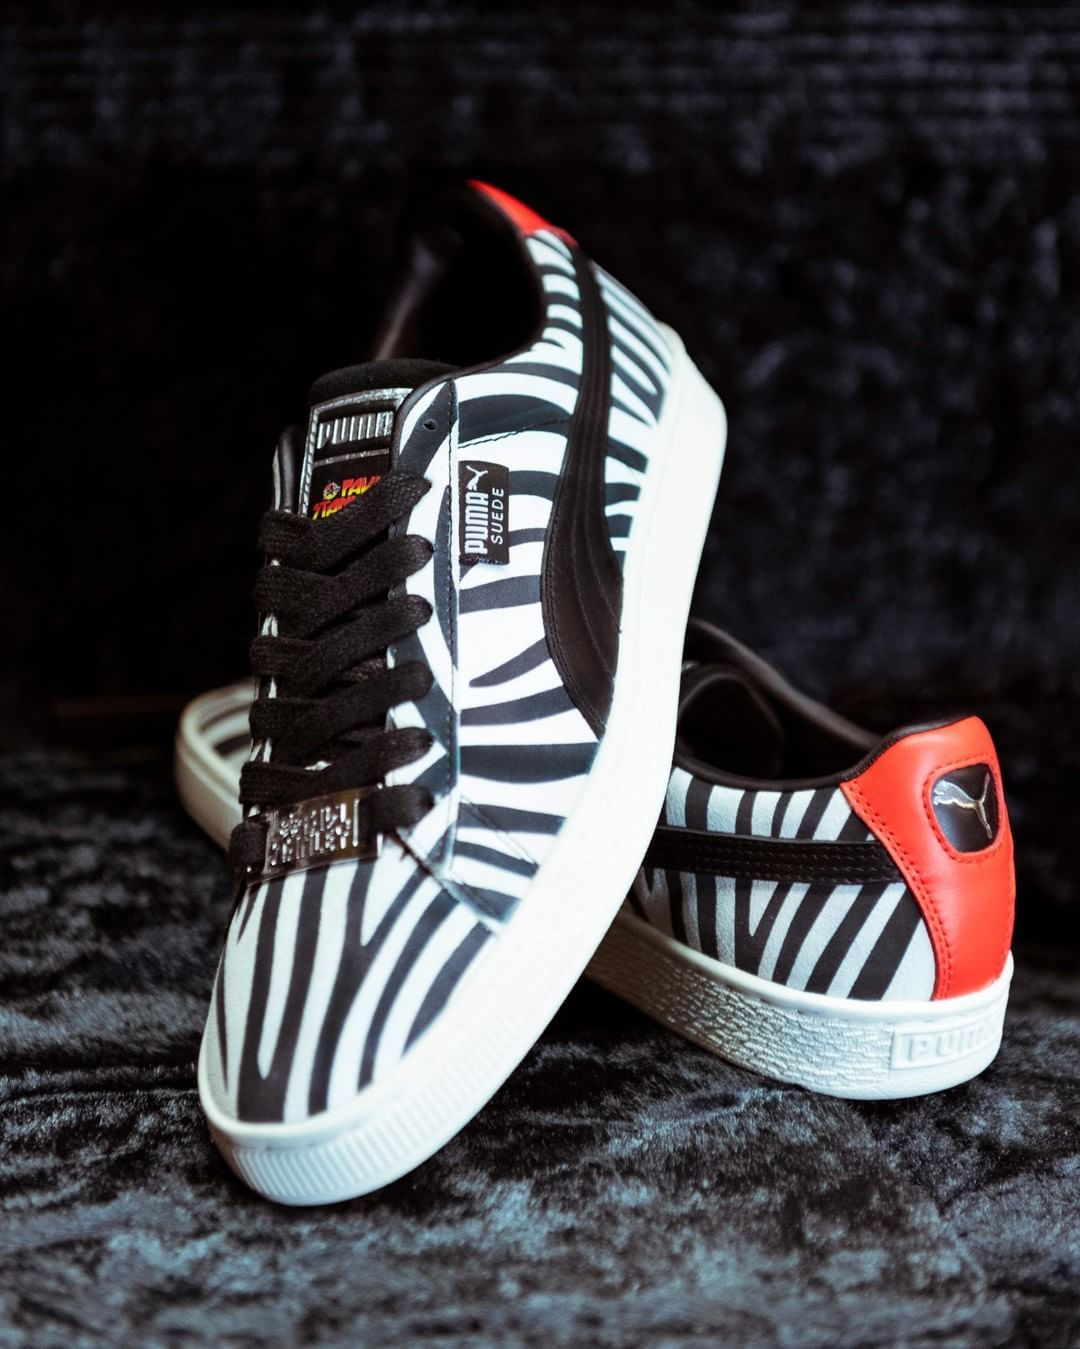 b0f2401e122 We re amped up.  PUMA x PAUL STANLEY. Available now online!